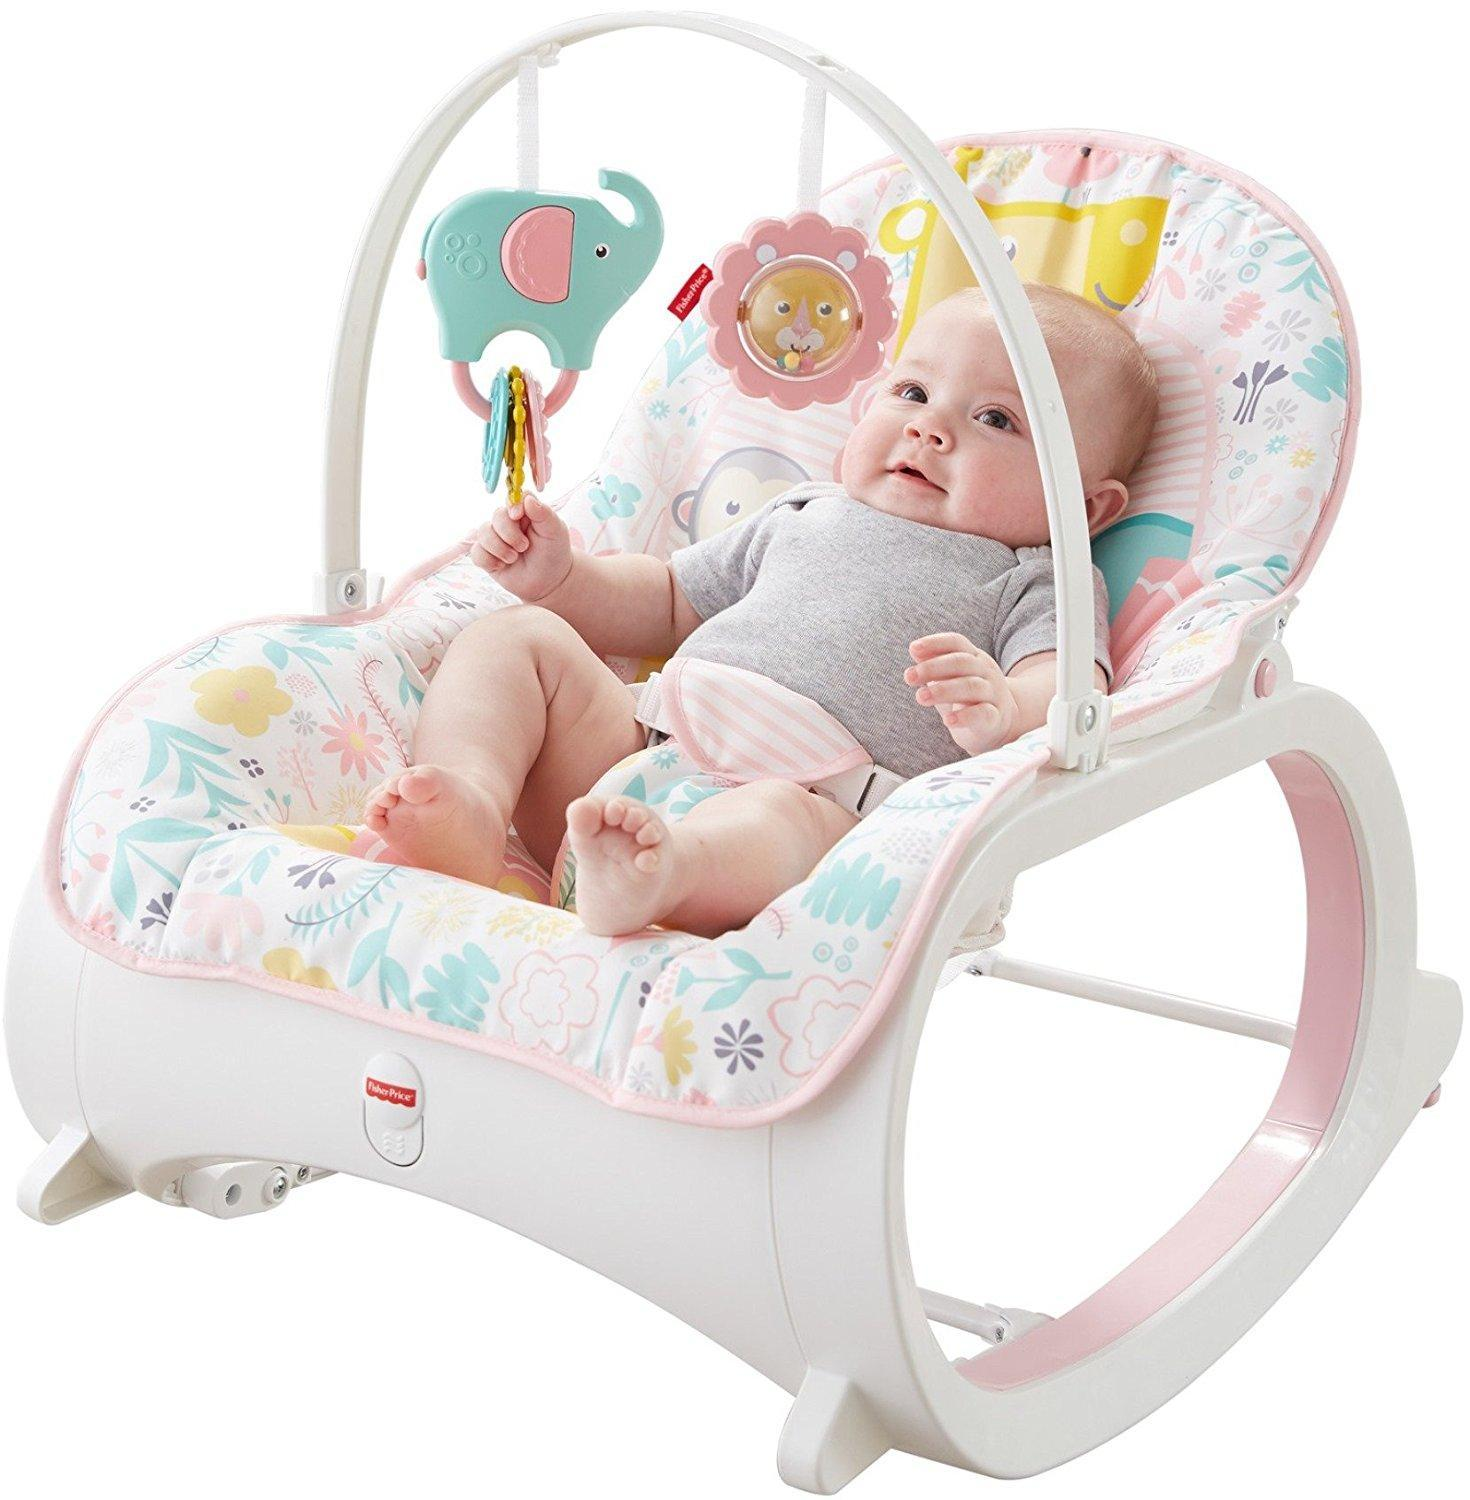 Amazon.com : Fisher-Price Infant-to-Toddler Rocker, Pink